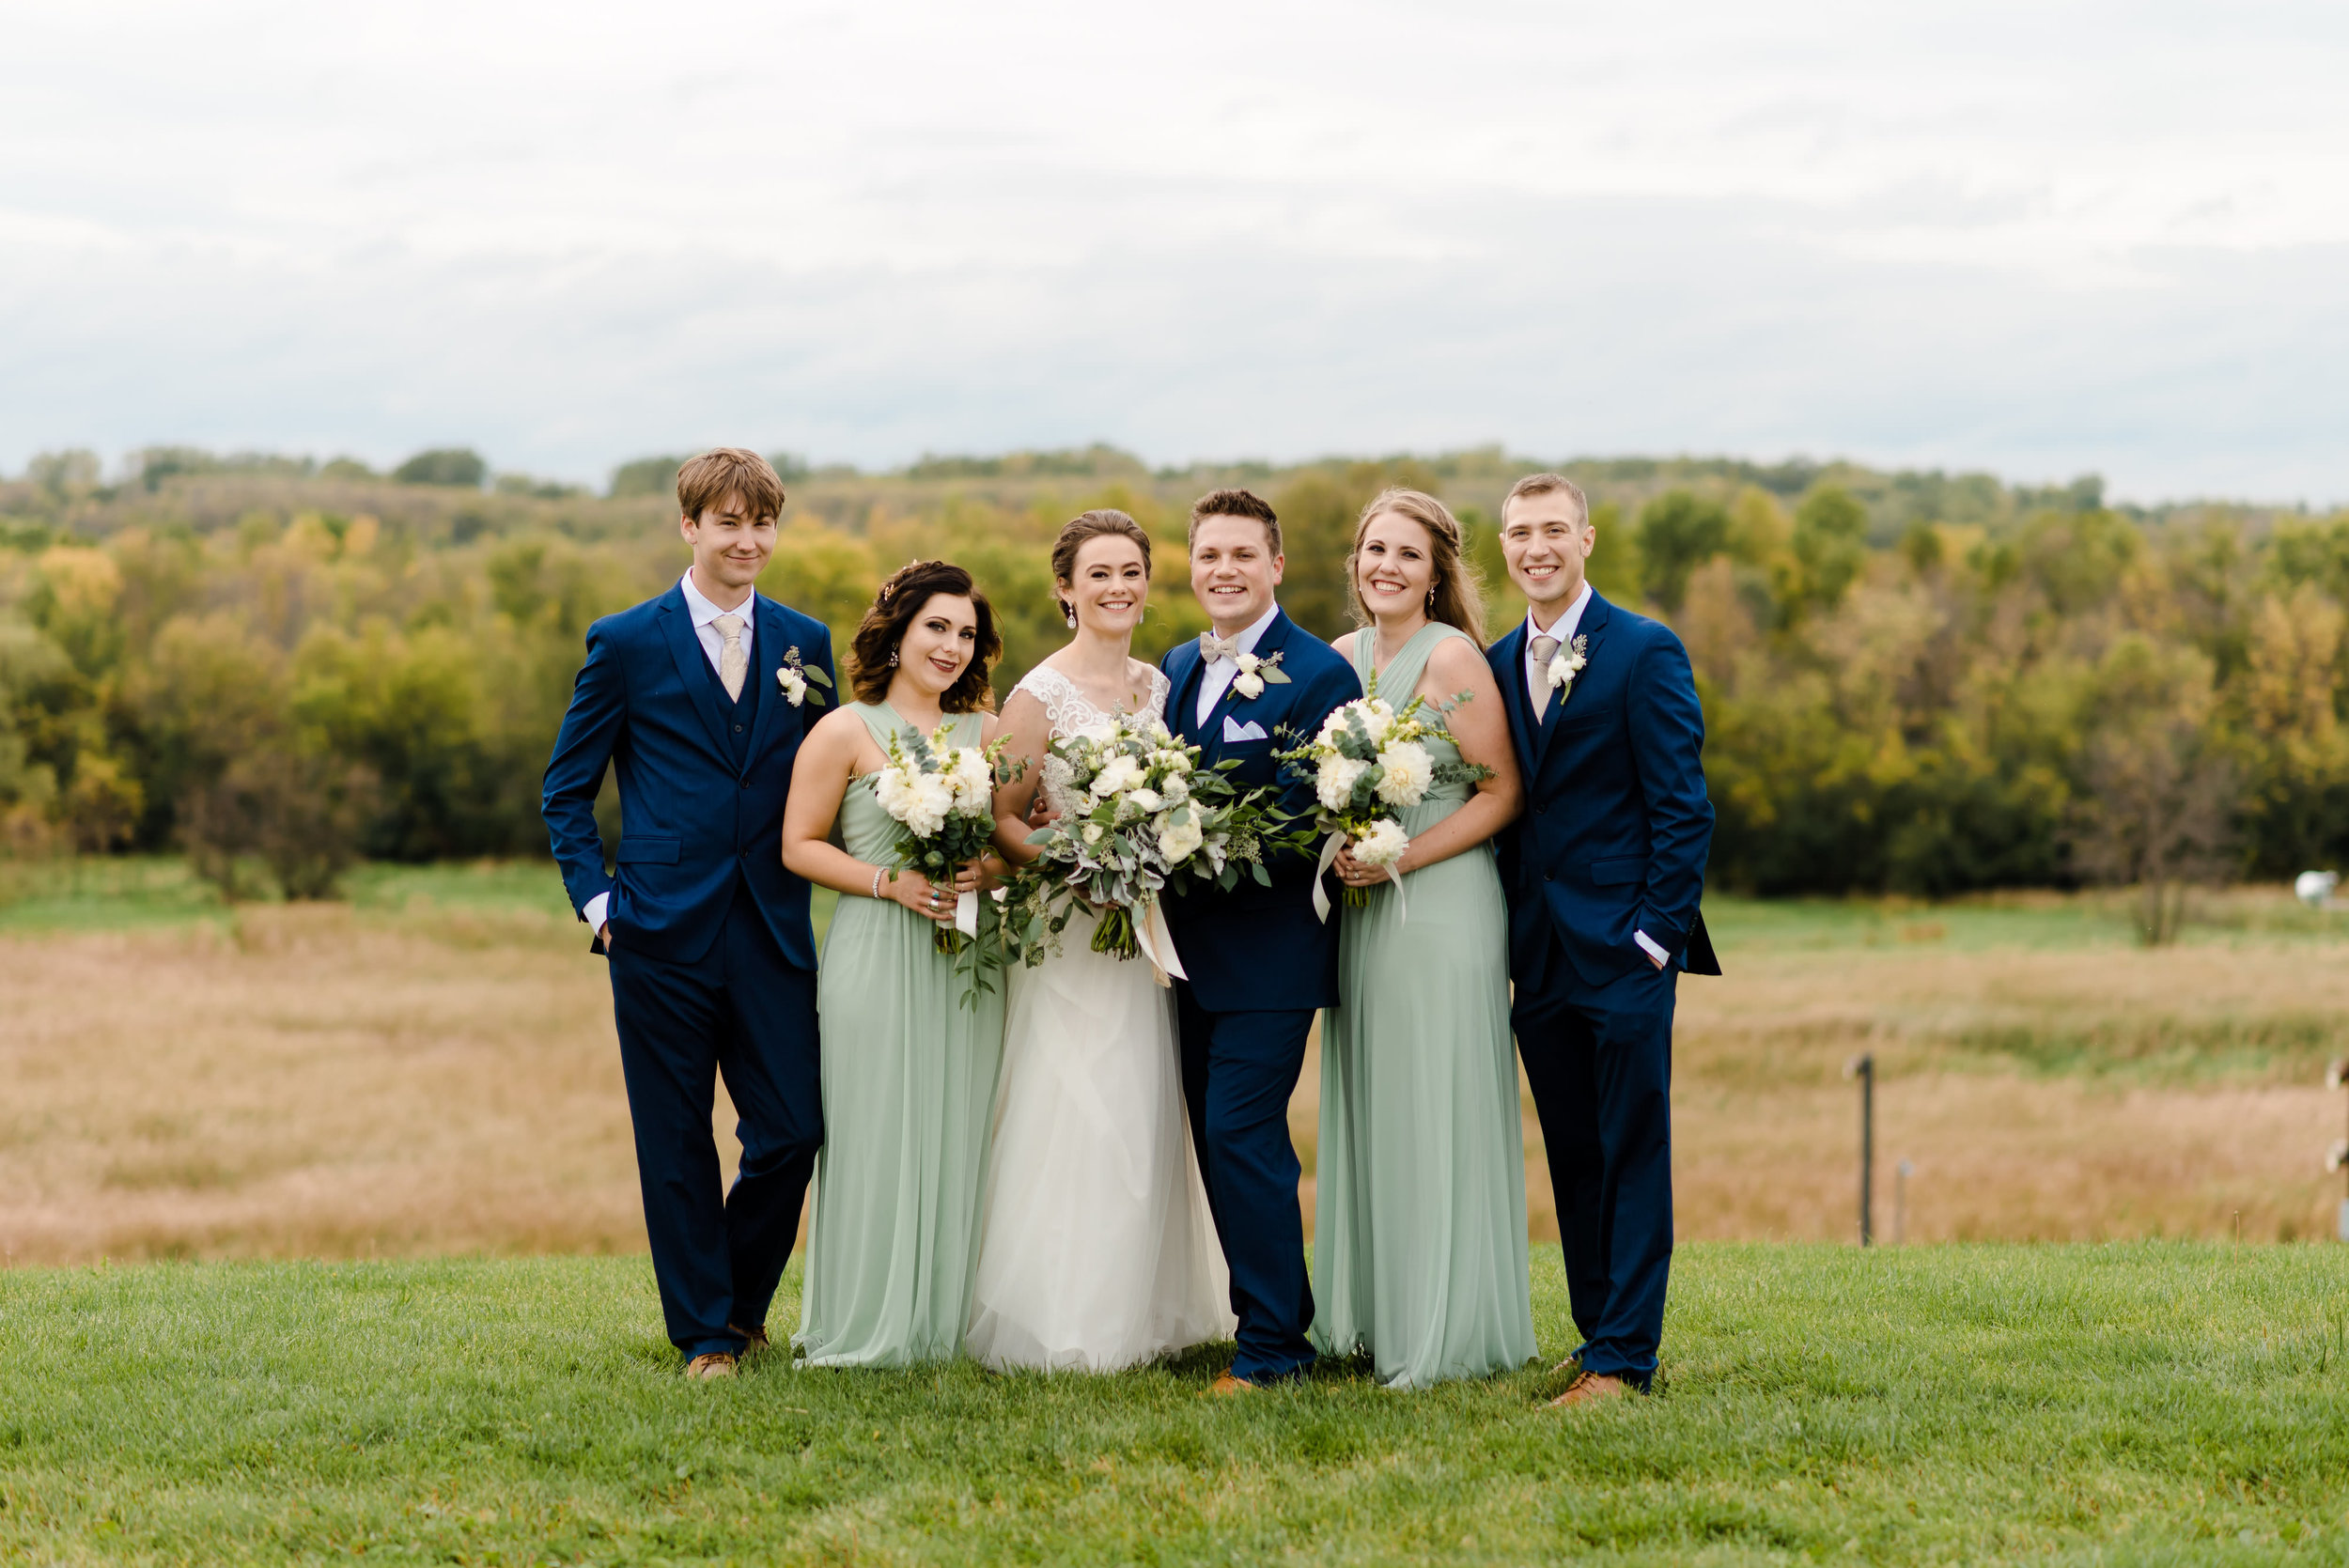 Mint and Navy Bridal Party Wedding Colors - Elm Creek Chalet Wedding Photos